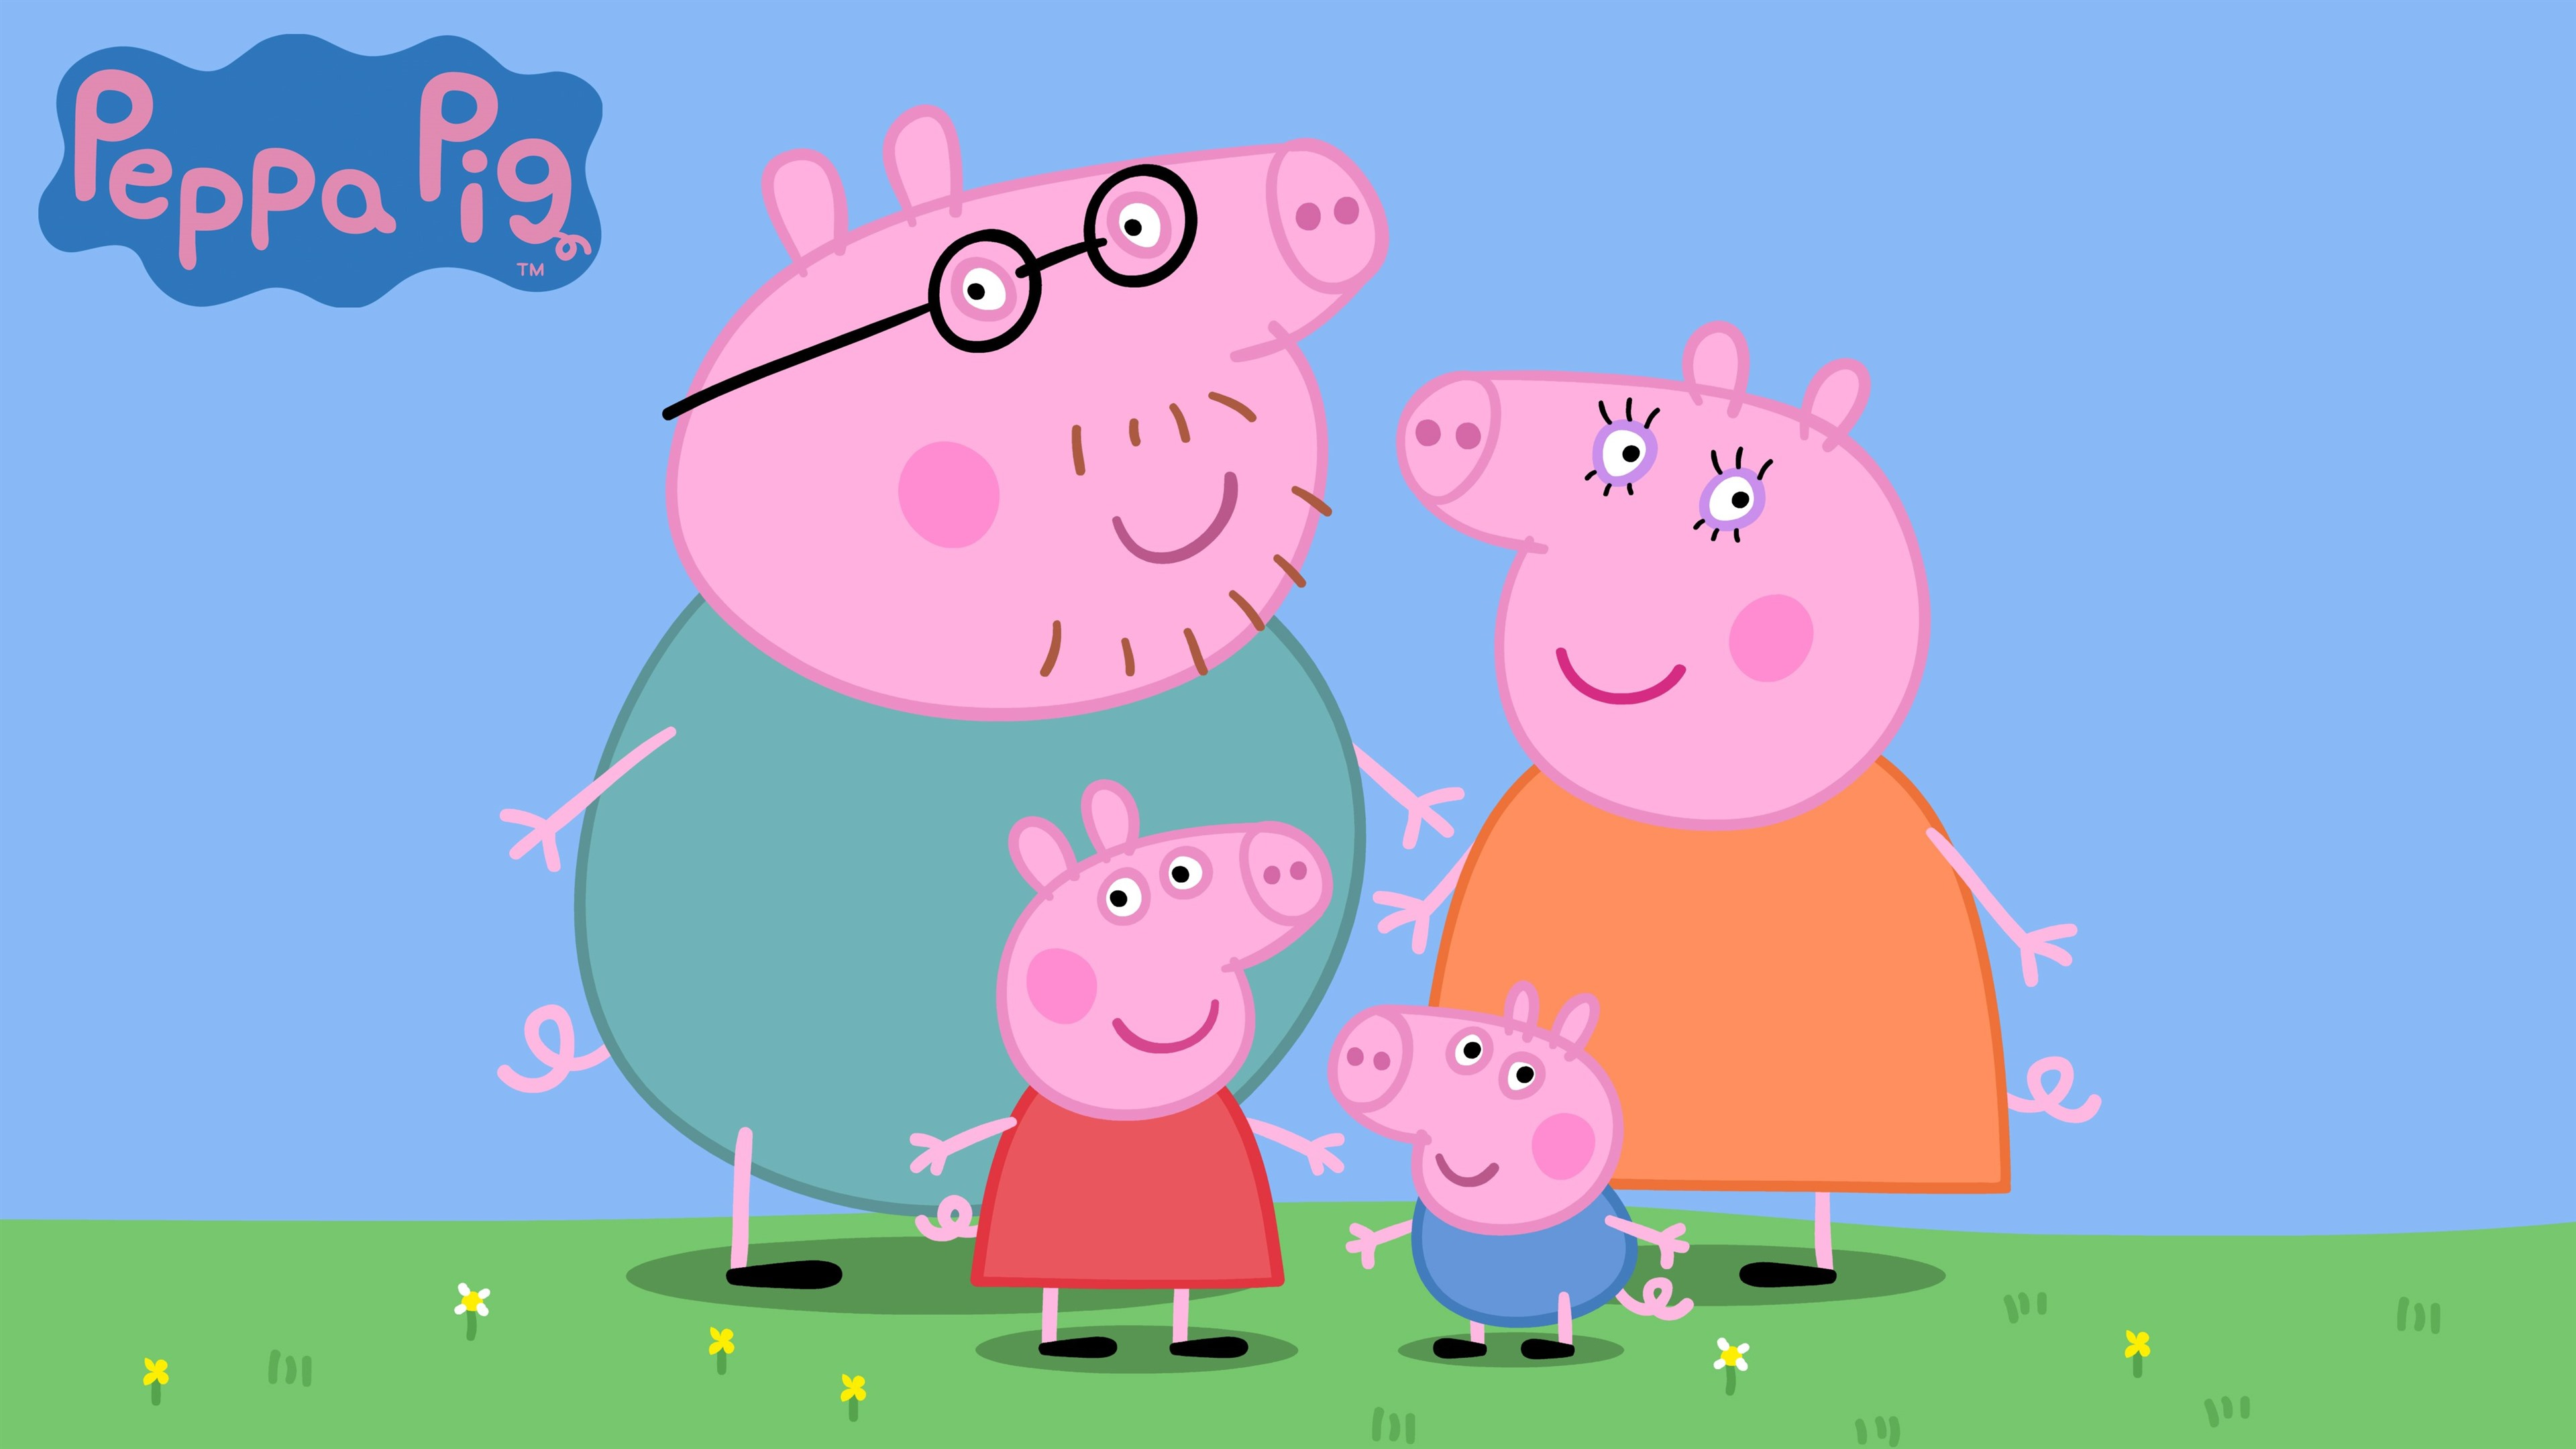 Wallpaper Peppa Pig Classic Anime 3840x2160 Uhd 4k Picture